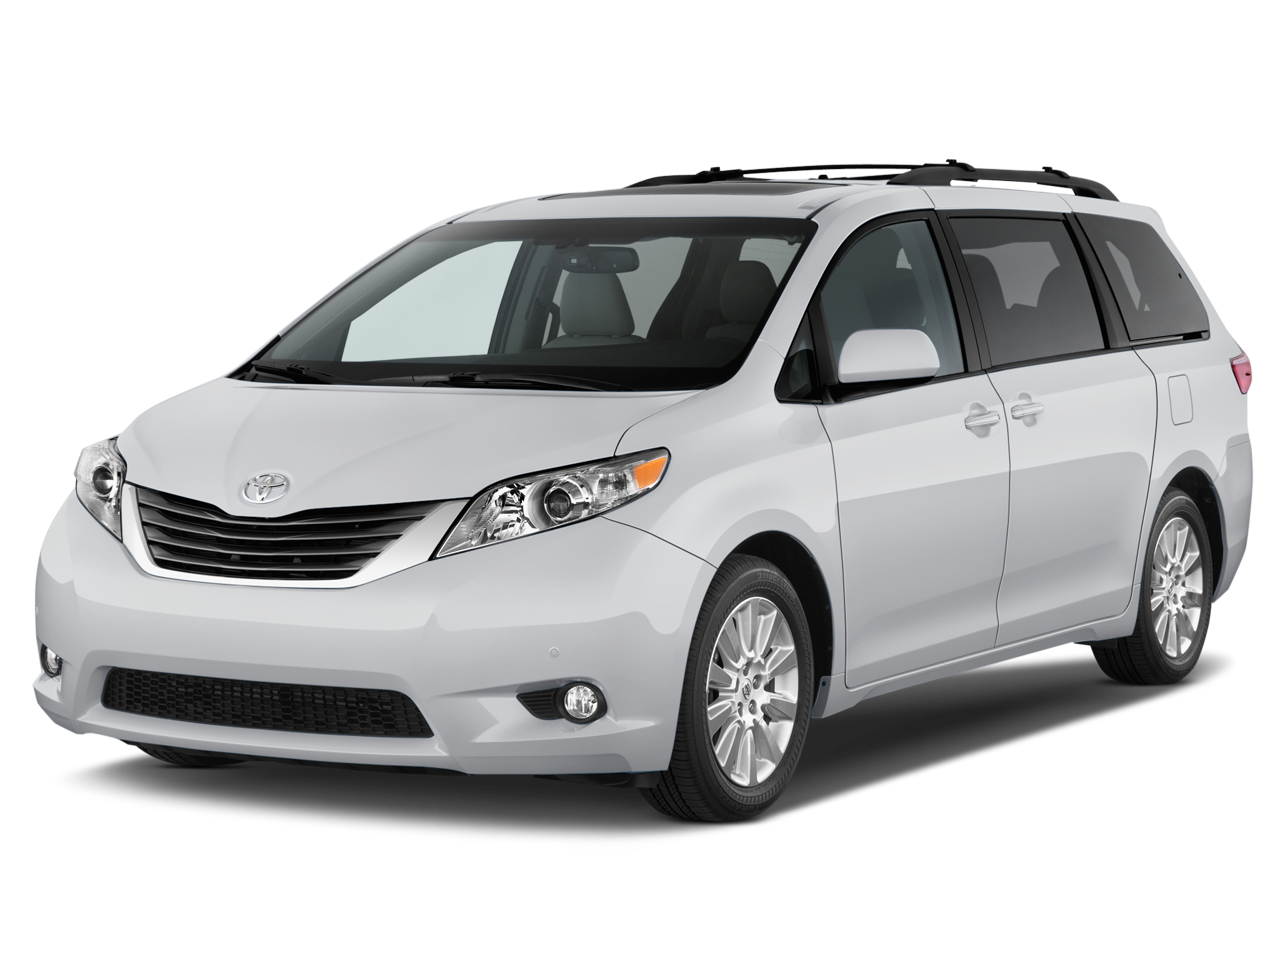 2017 toyota sienna for sale near greenwich ct toyota of greenwich. Black Bedroom Furniture Sets. Home Design Ideas